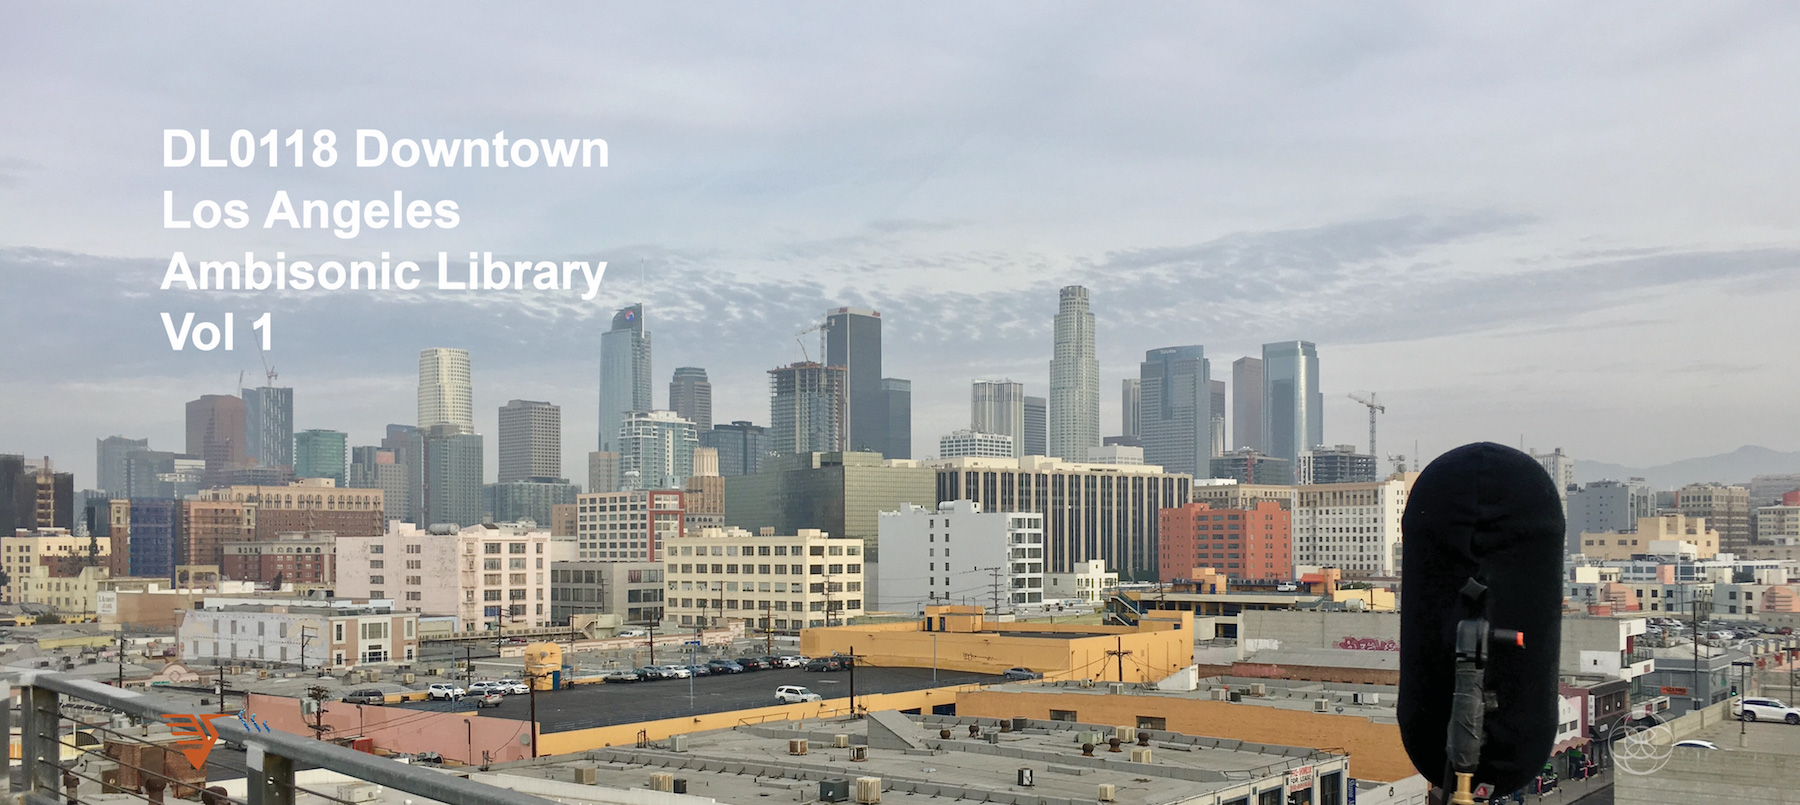 The making of DL0118 Downtown Los Angeles Ambisonic Library Vol 1